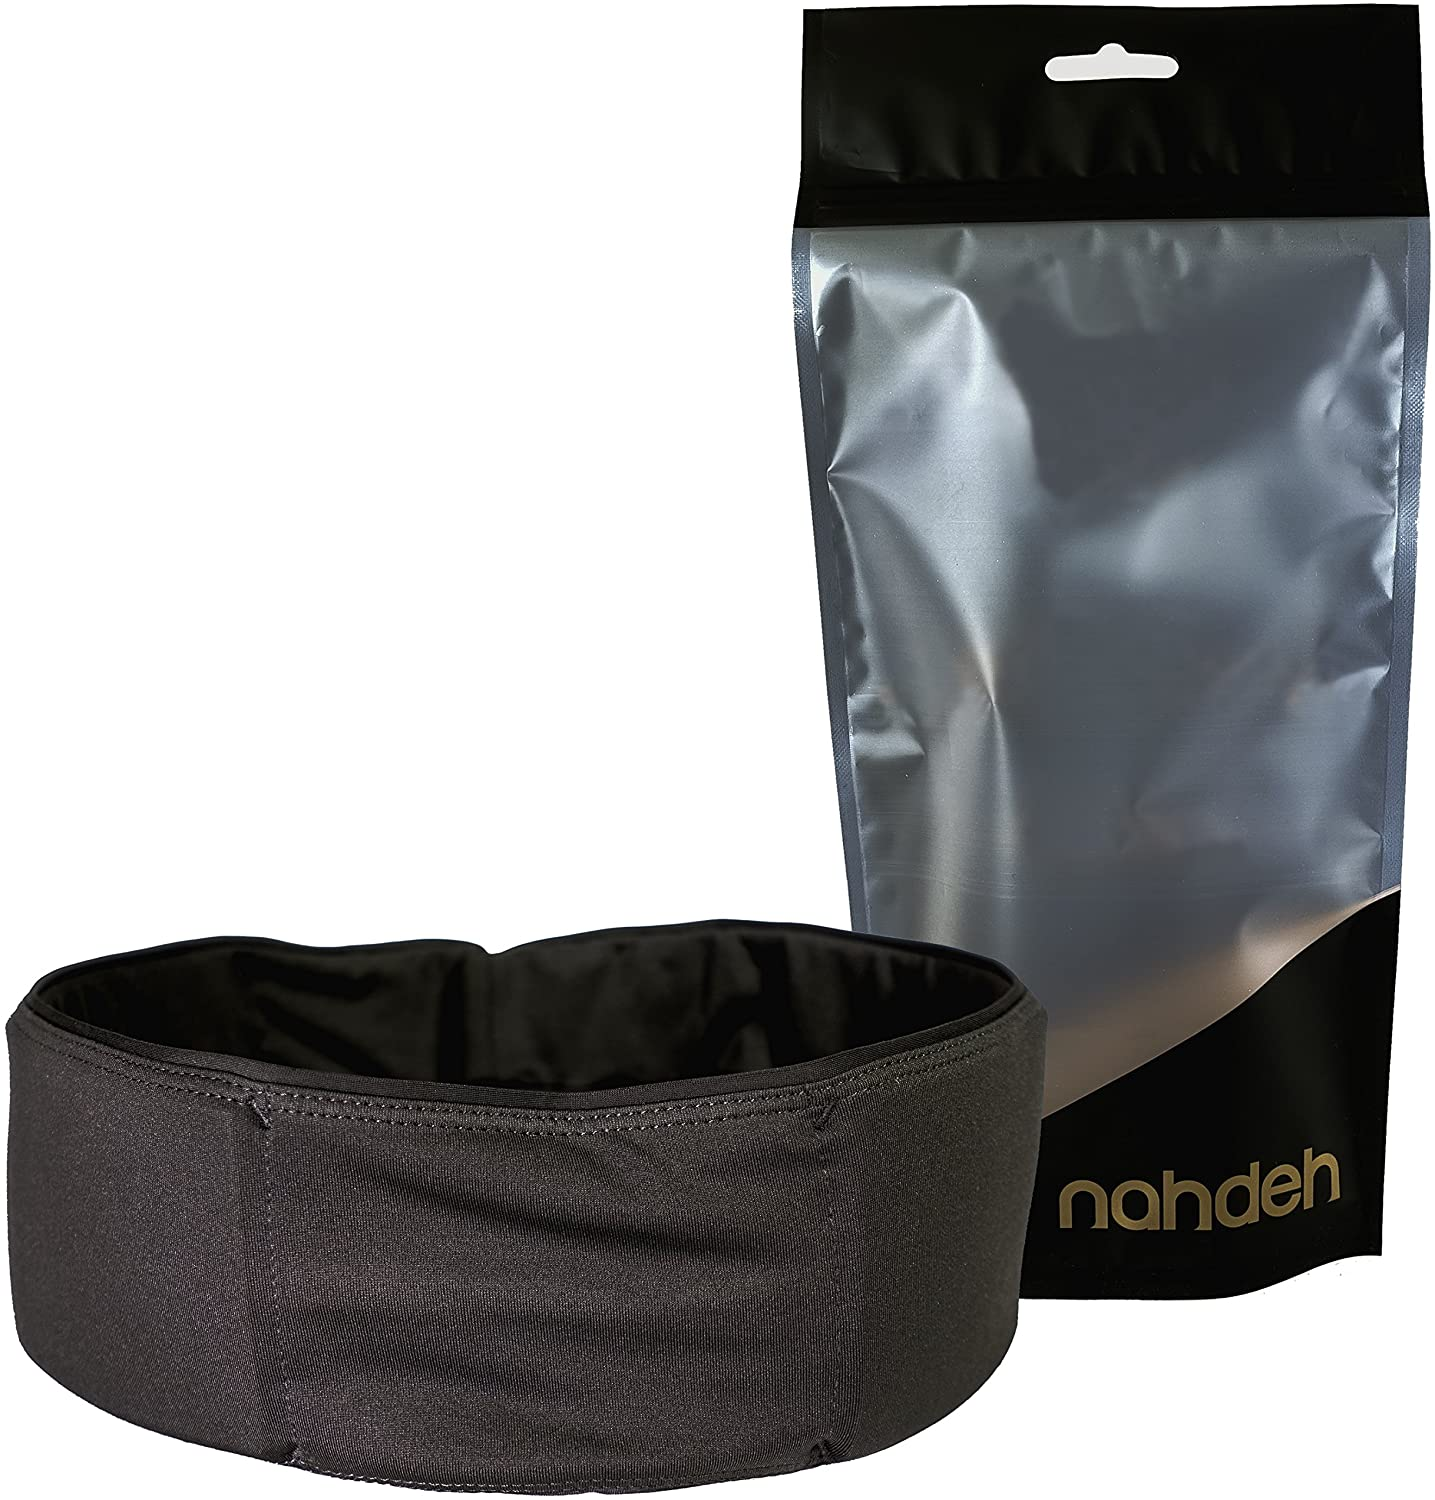 nahdeh Bruisebelt - Hip Pads Protection Belt for Volleyball, Basketball, Football and Other Contact Sports - This Hip Protector is an Easy Slide on Belt with Gel Pads